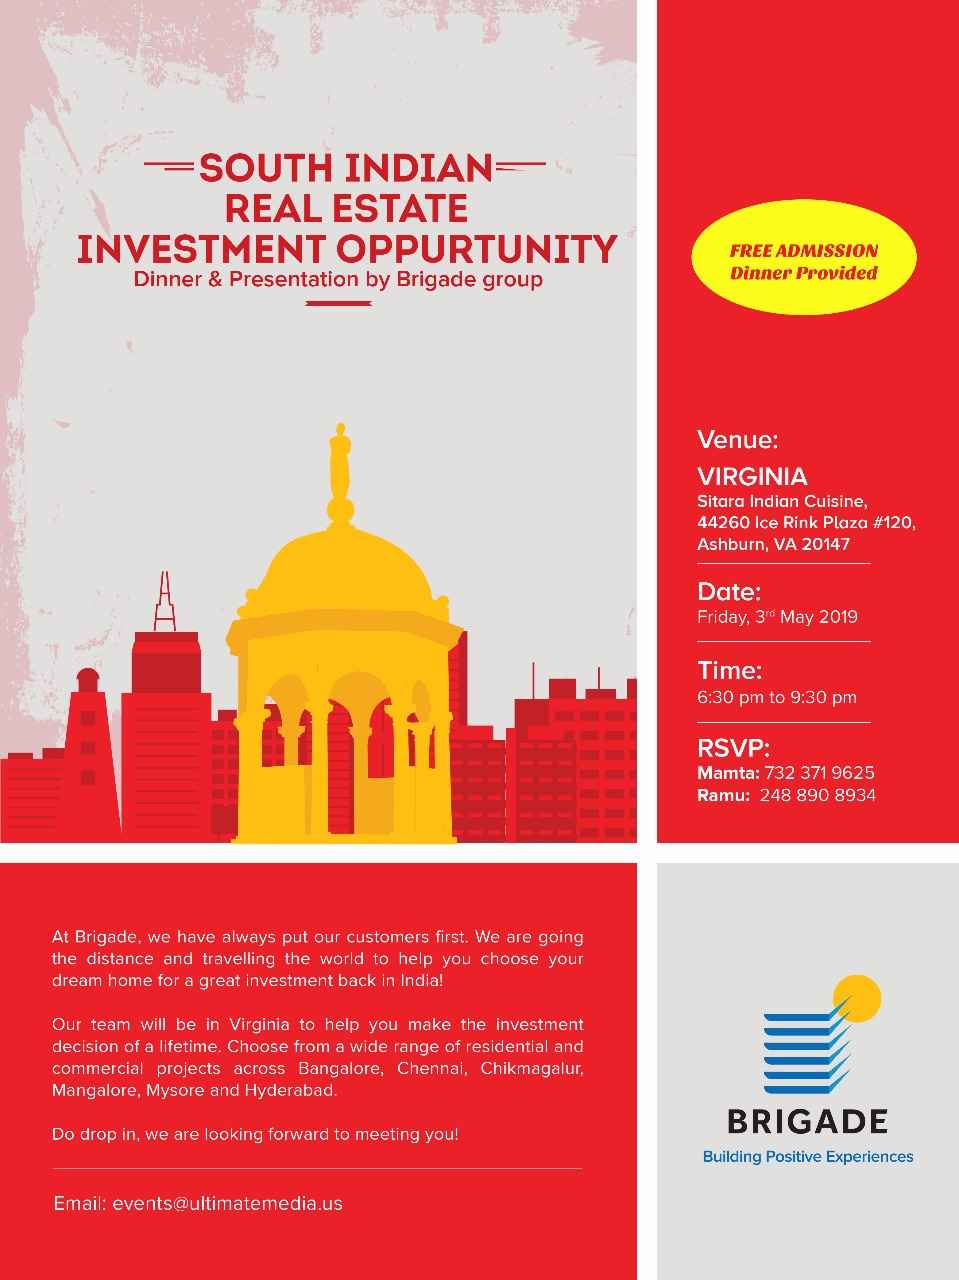 South Indian Real Estate Investment Oppurtunity